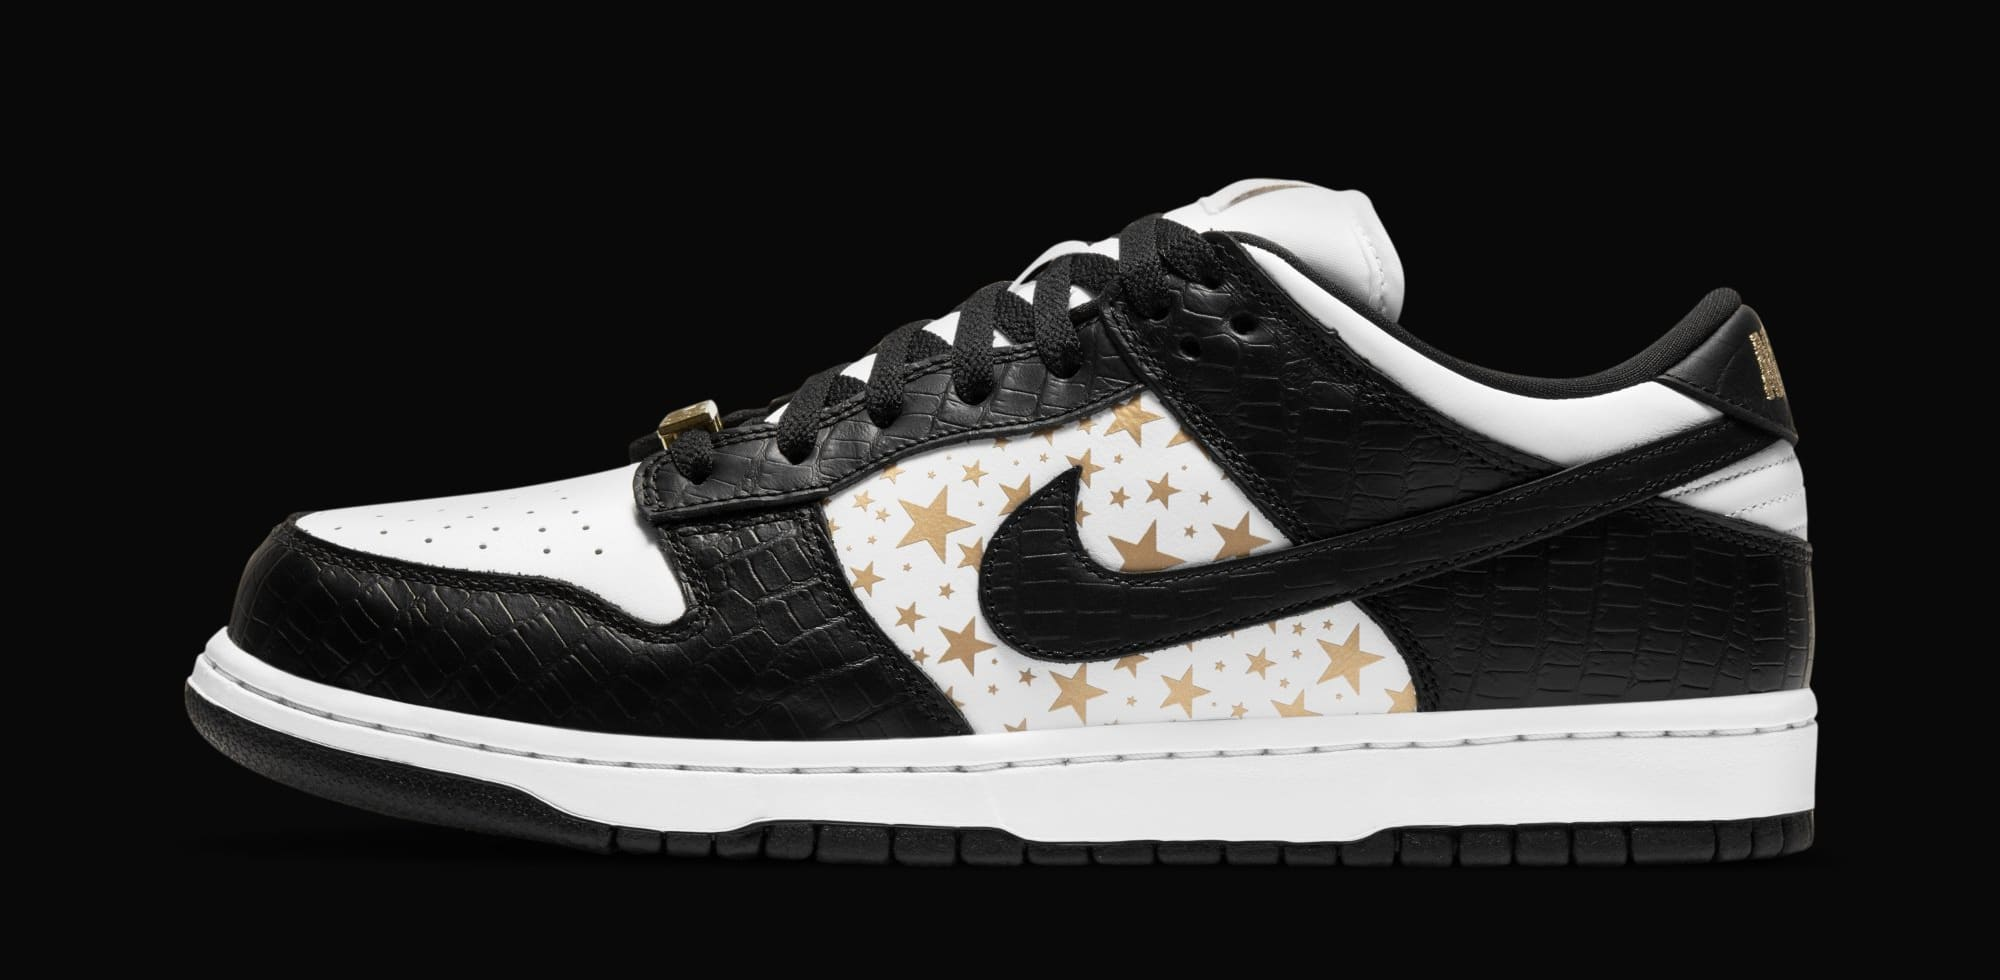 Supreme x Nike SB Dunk Low 'Black' DH3228-102 (Lateral)